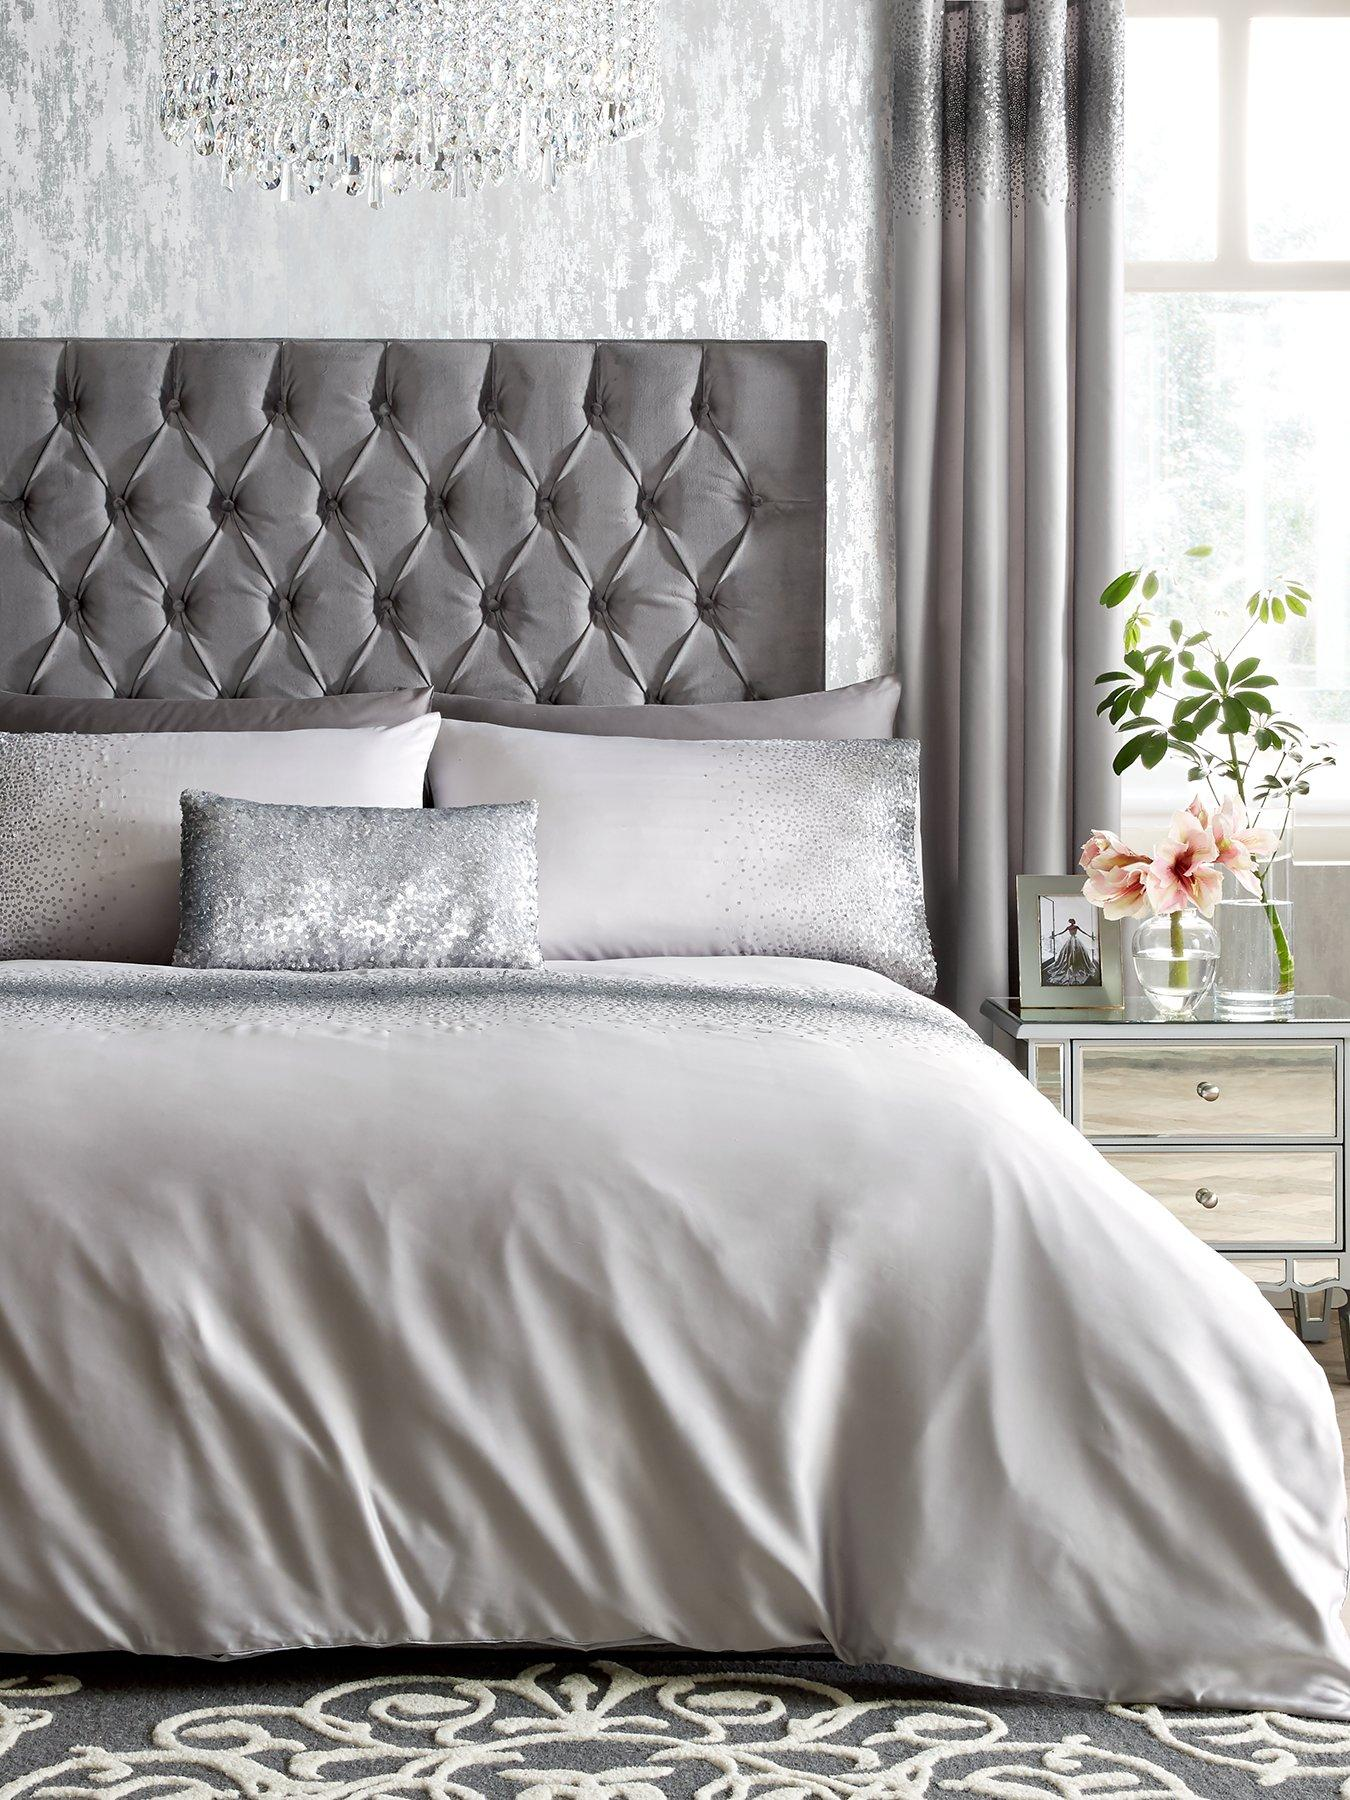 Charcoal Bedding Sets Bedding Sets Duvet Covers Ombre Sequins Band Silver Charcoal